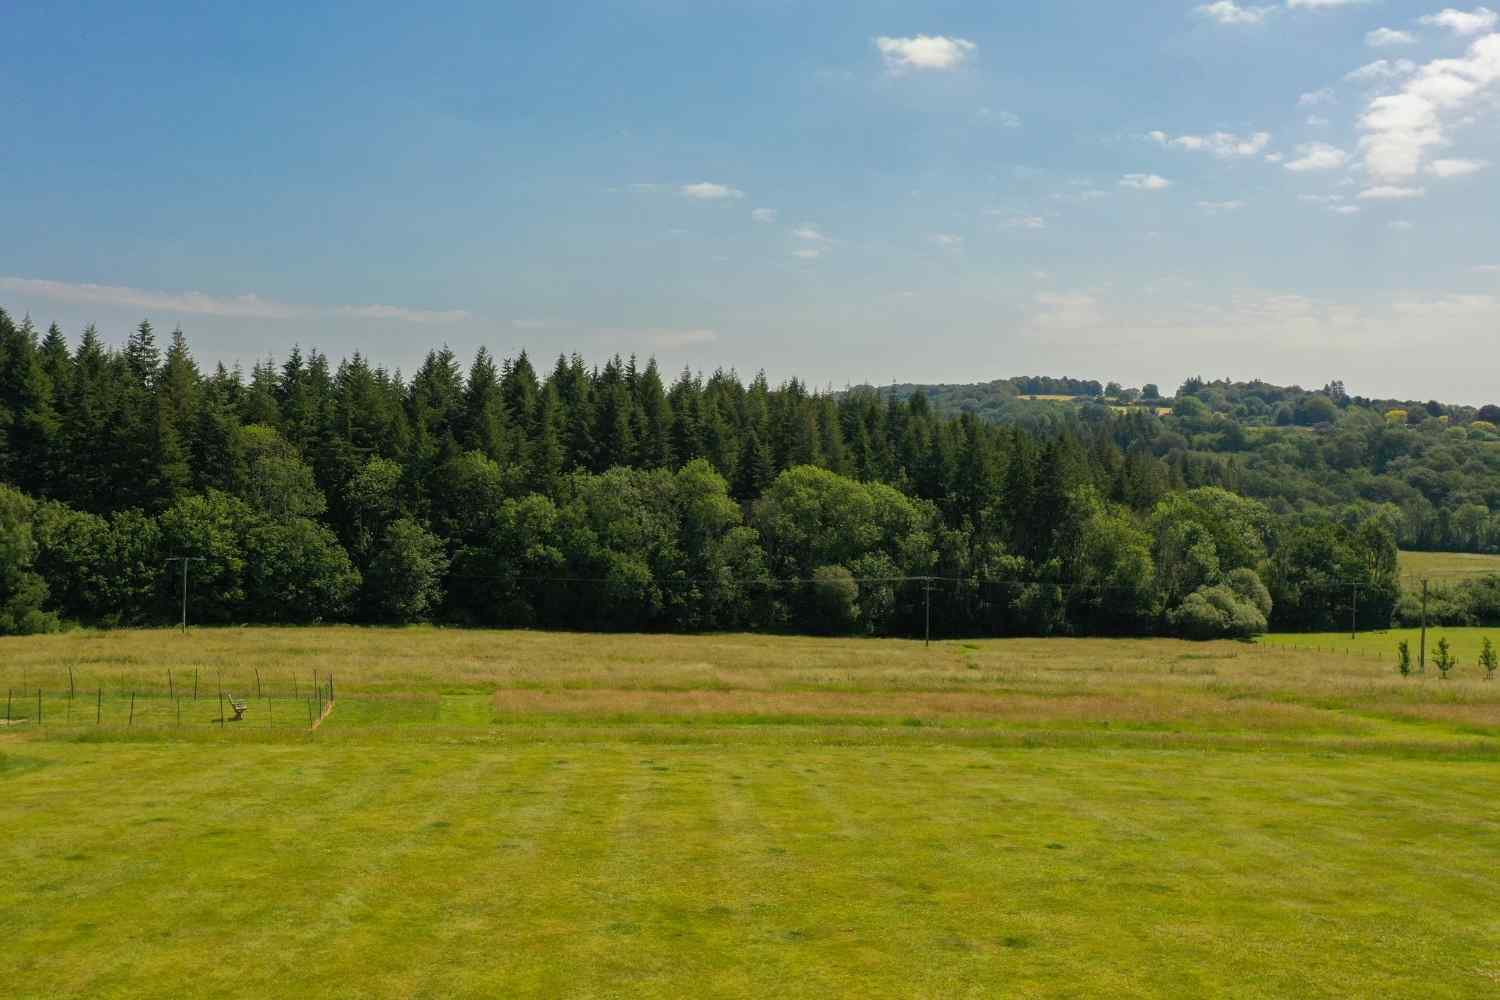 Paddock and views over to the woods